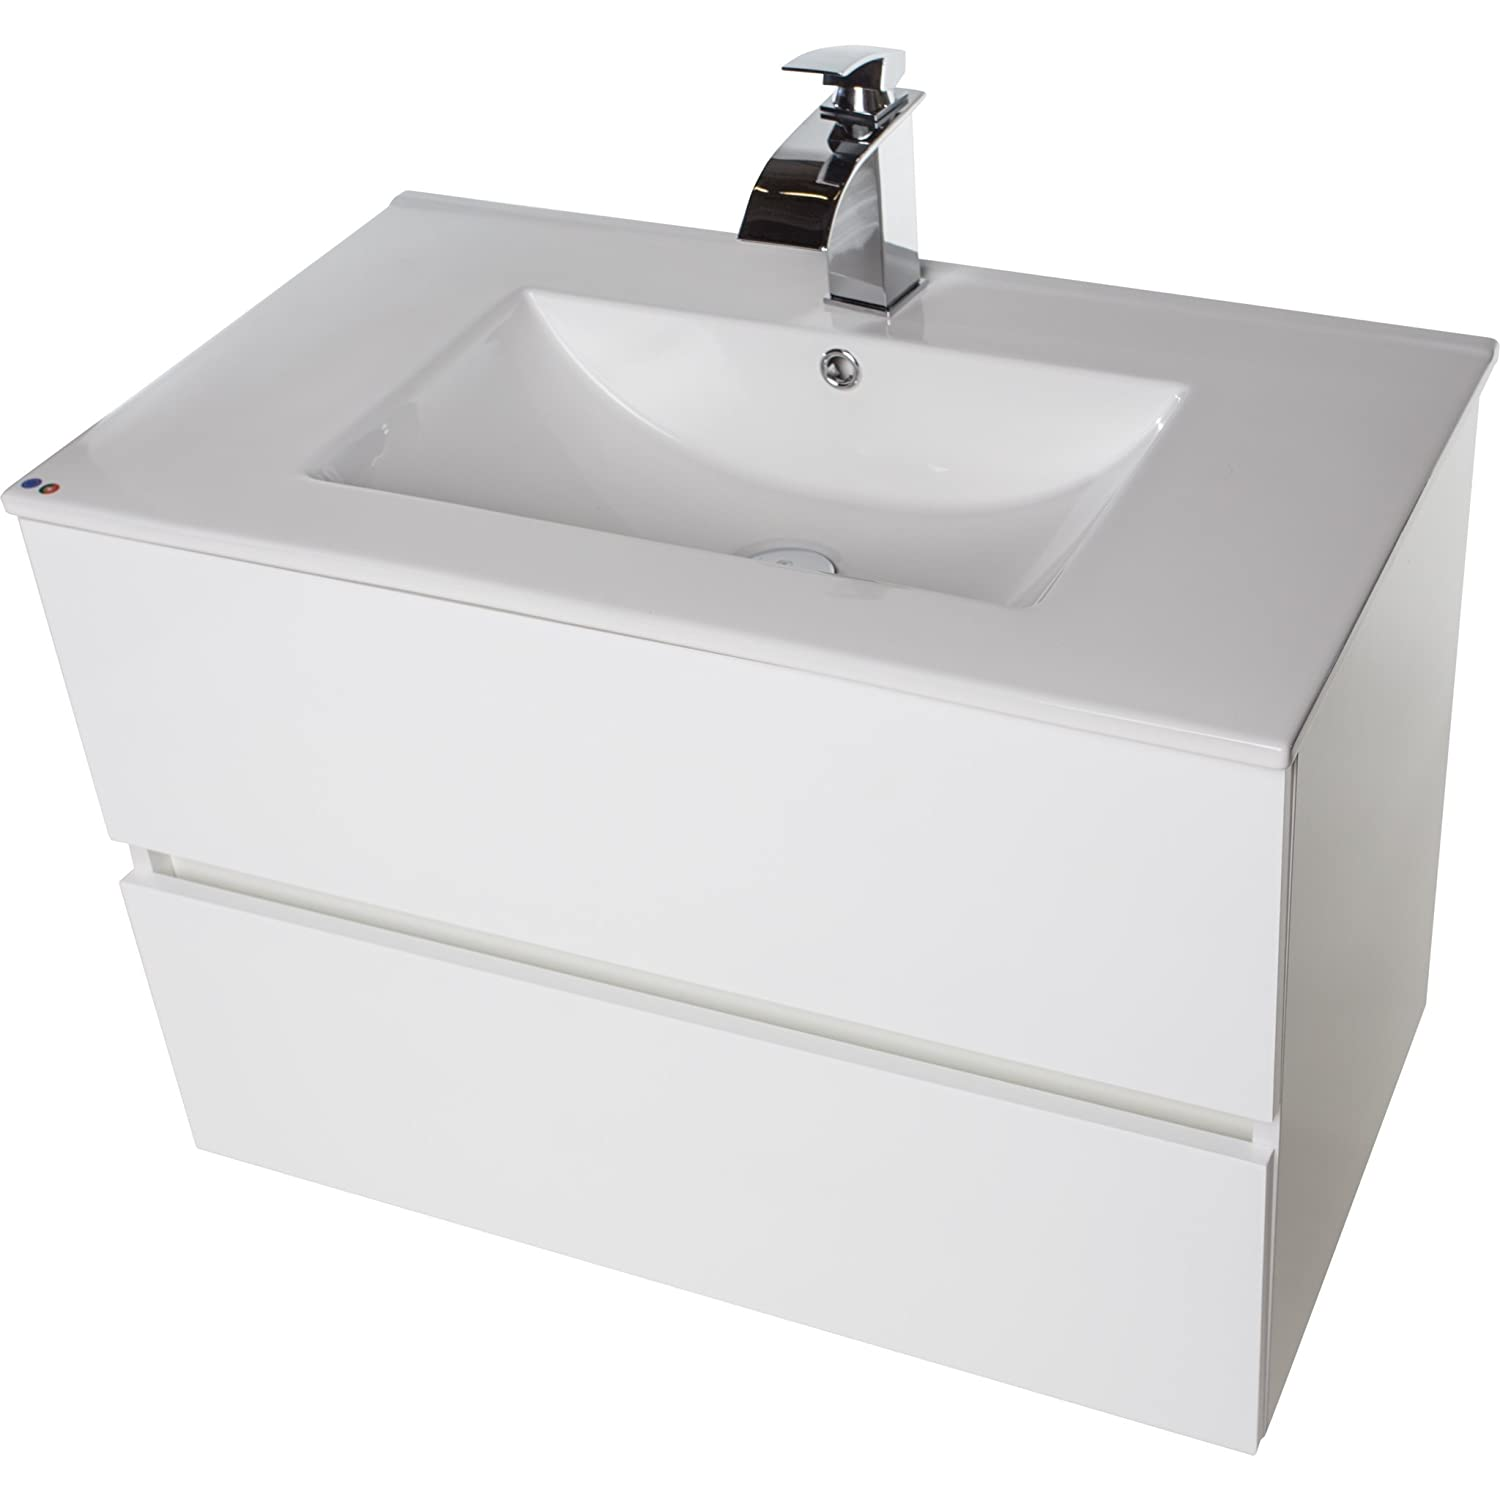 Surf Wall Mounted Bathroom Vanity Cabinet Set Bath Furniture With